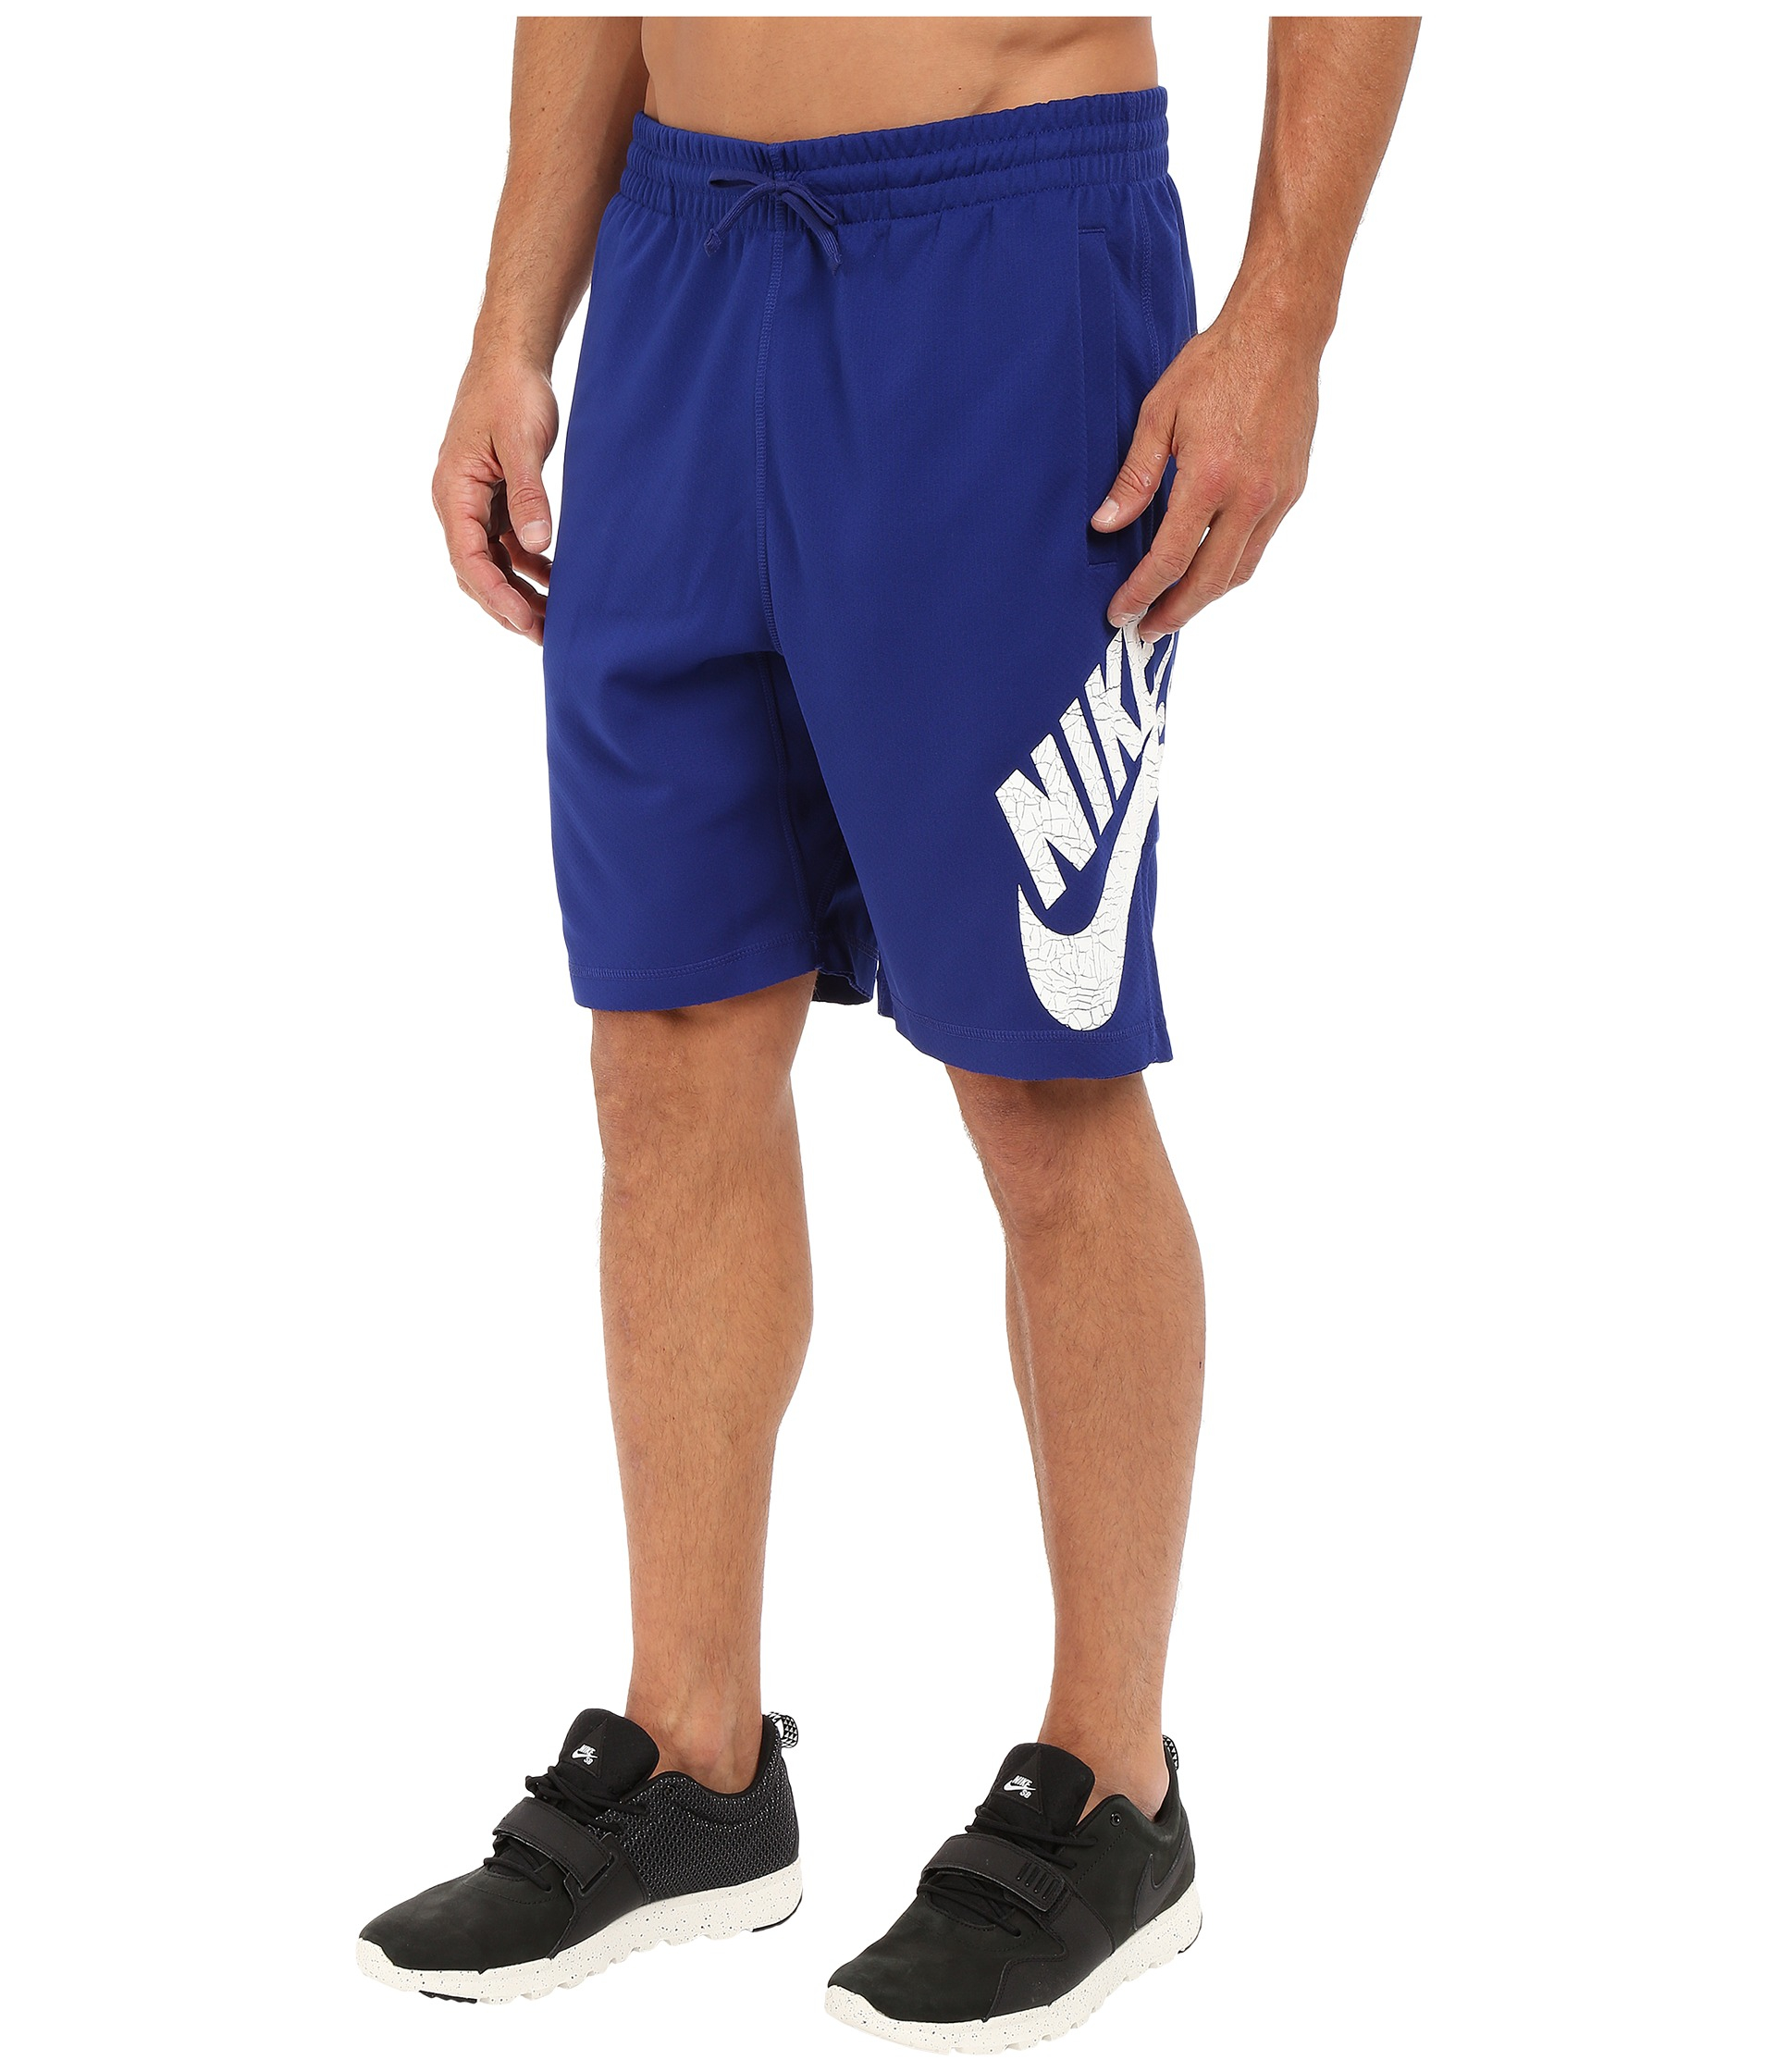 7d4ab3aef377 Lyst - Nike Sb Dri-fit Sunday Short in Blue for Men